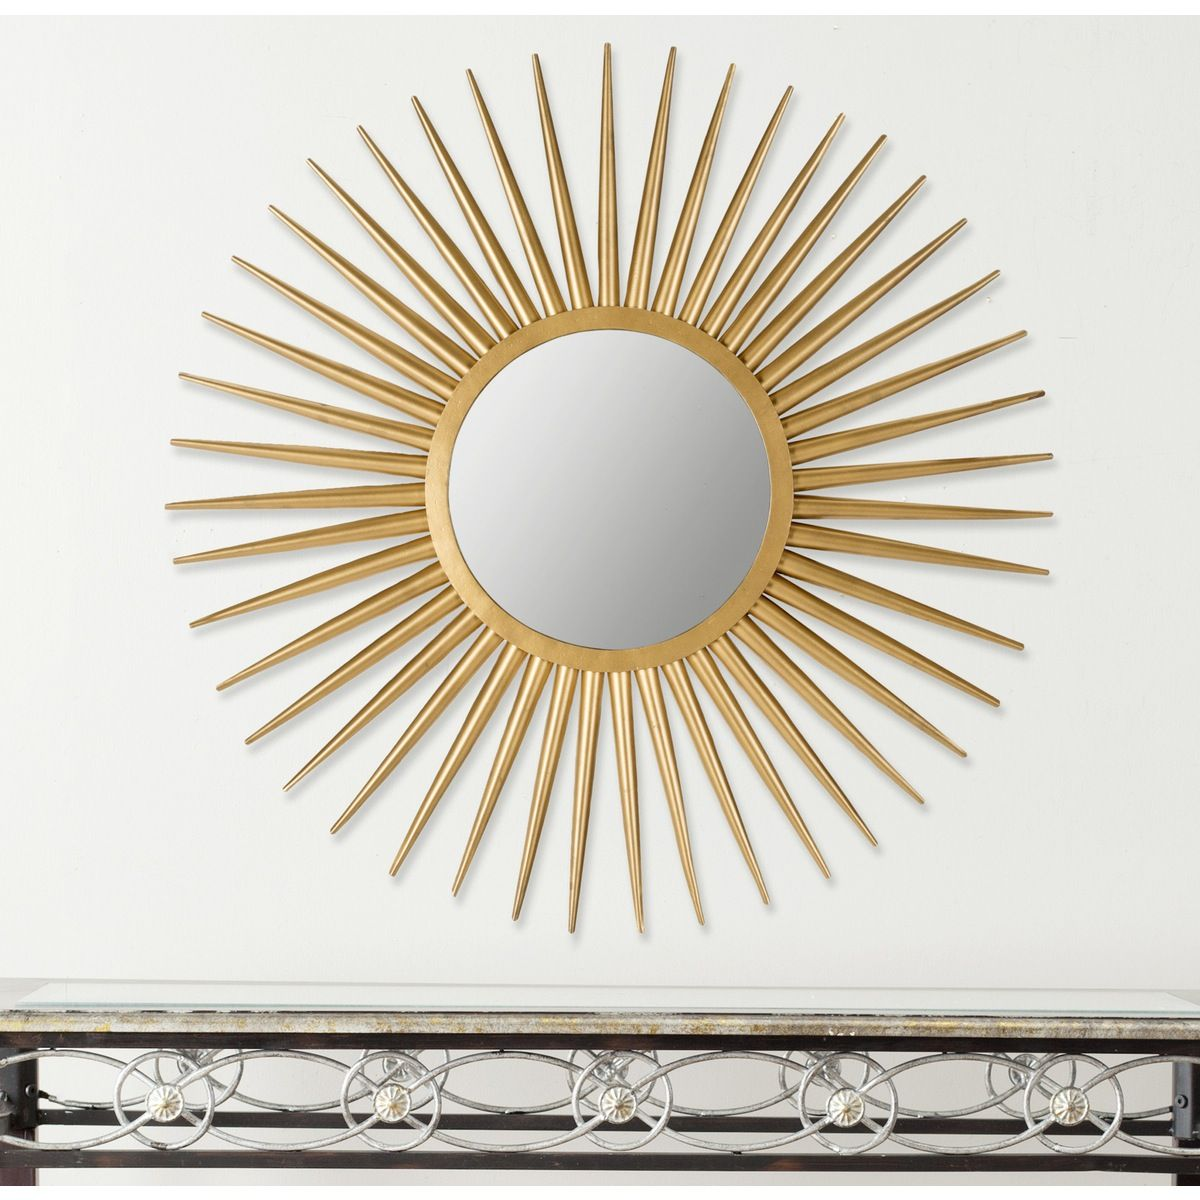 The hand-wrought iron Sun Flair sunburst mirror feels just as at home in traditional décor as it does in midcentury modern. Its elegant artisan-crafted gold finish makes this stunning decorative element shine.